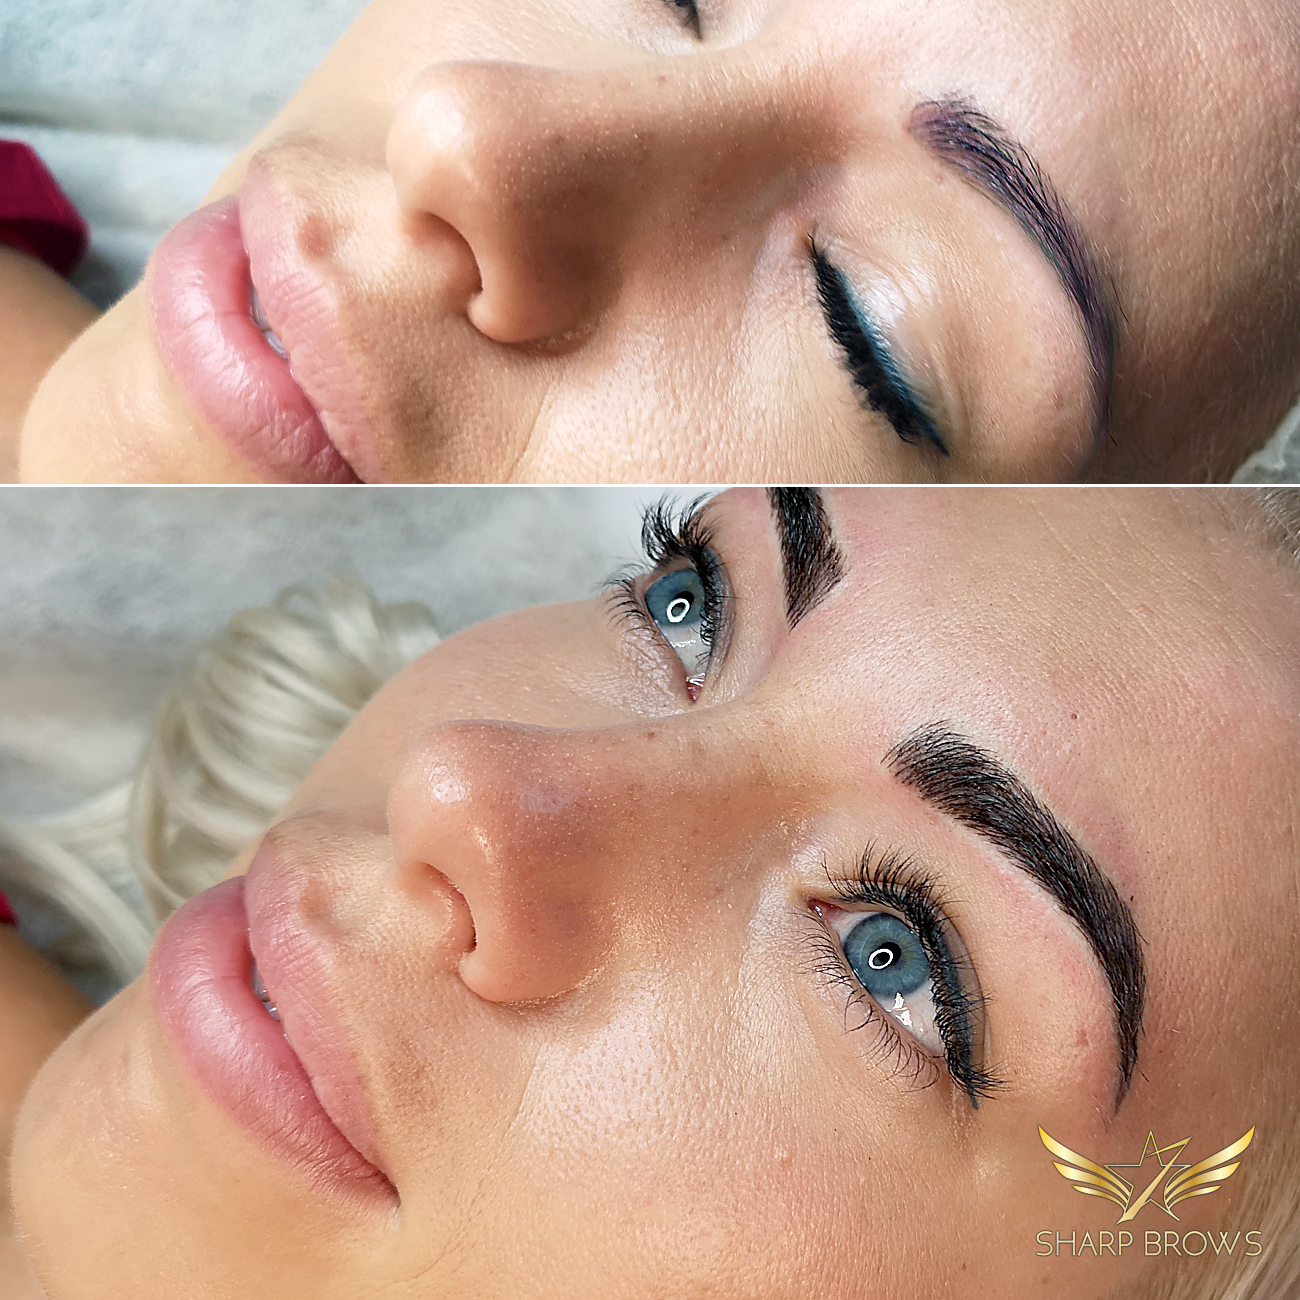 Light microblading. Pretty outdated and quite bad pigmentation saved flawlessly with Light microblading. The result it lush natural brow.